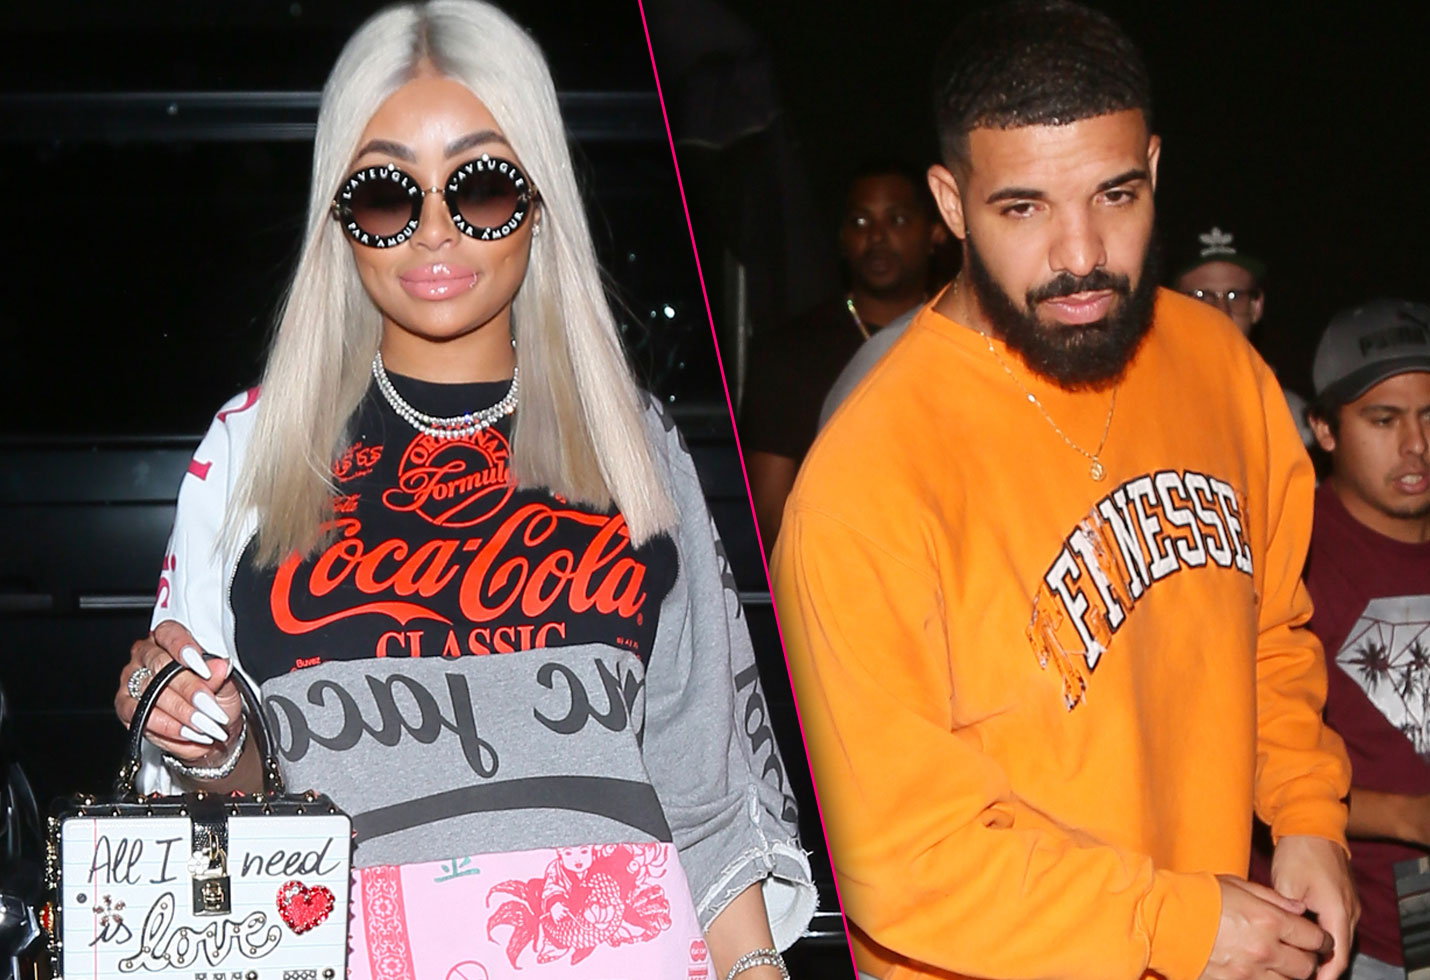 blac chyna drake spotted partying together all night long